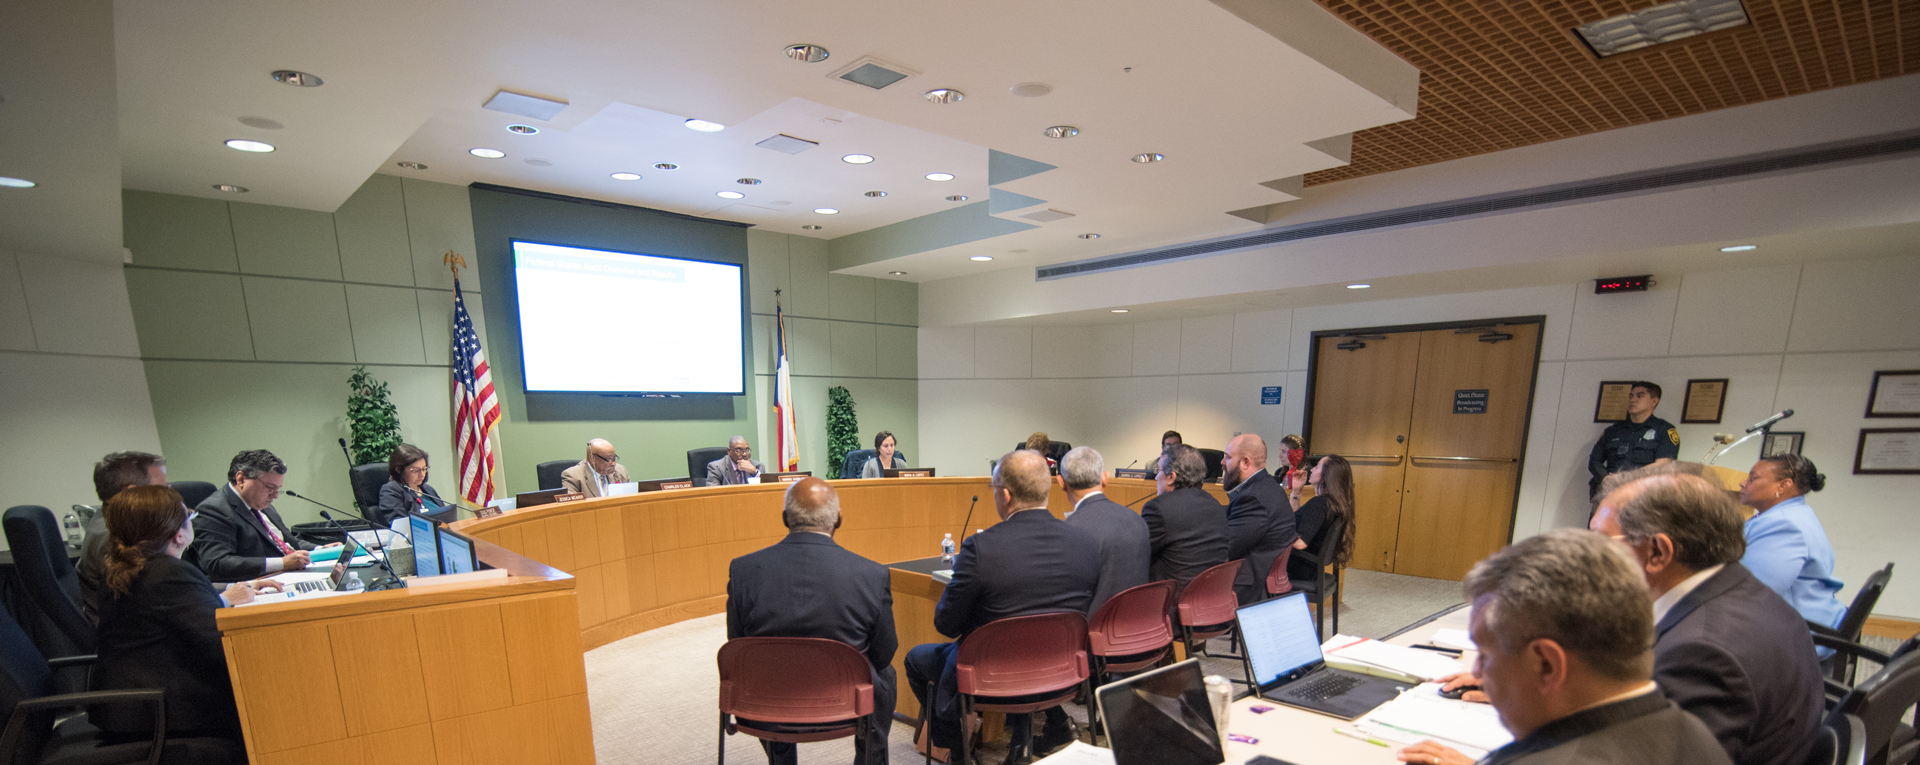 Guzman Elected Chair by Board of Commissioners